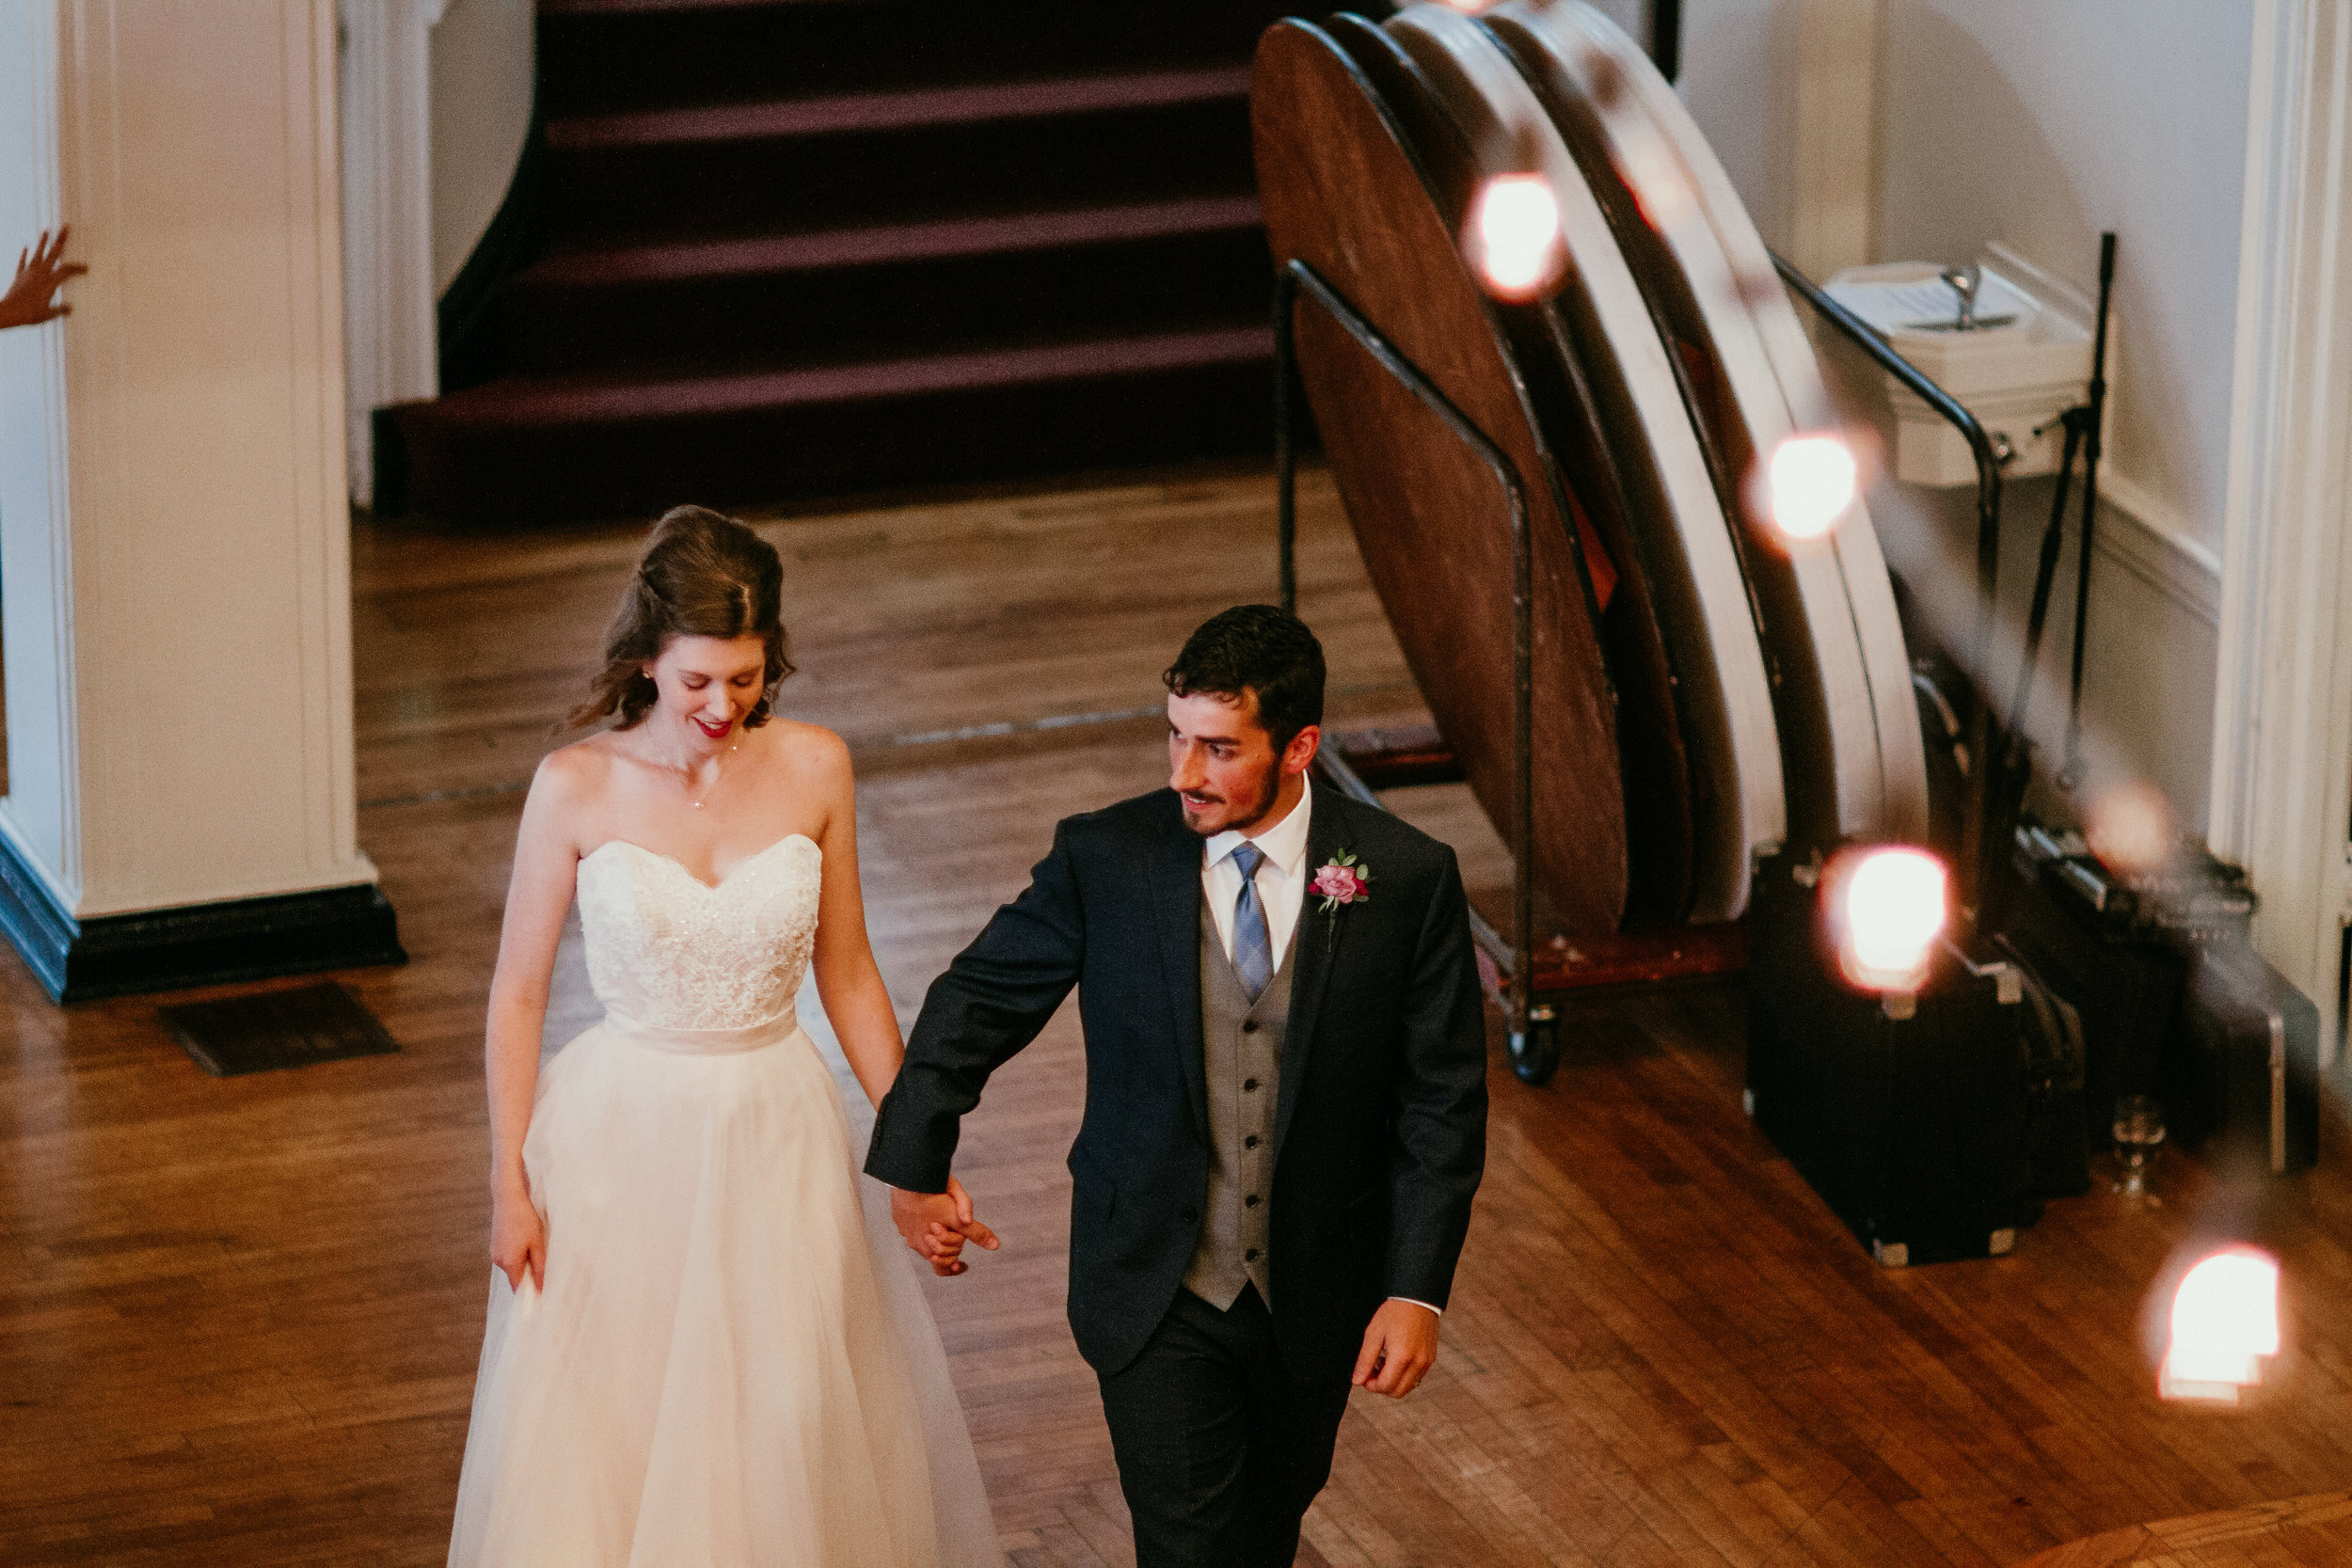 Introducing Husband and wife into the reception | Shelbie & Jospeh's Summer Love Story : Kansas City Wedding | Hanna Hill Photography